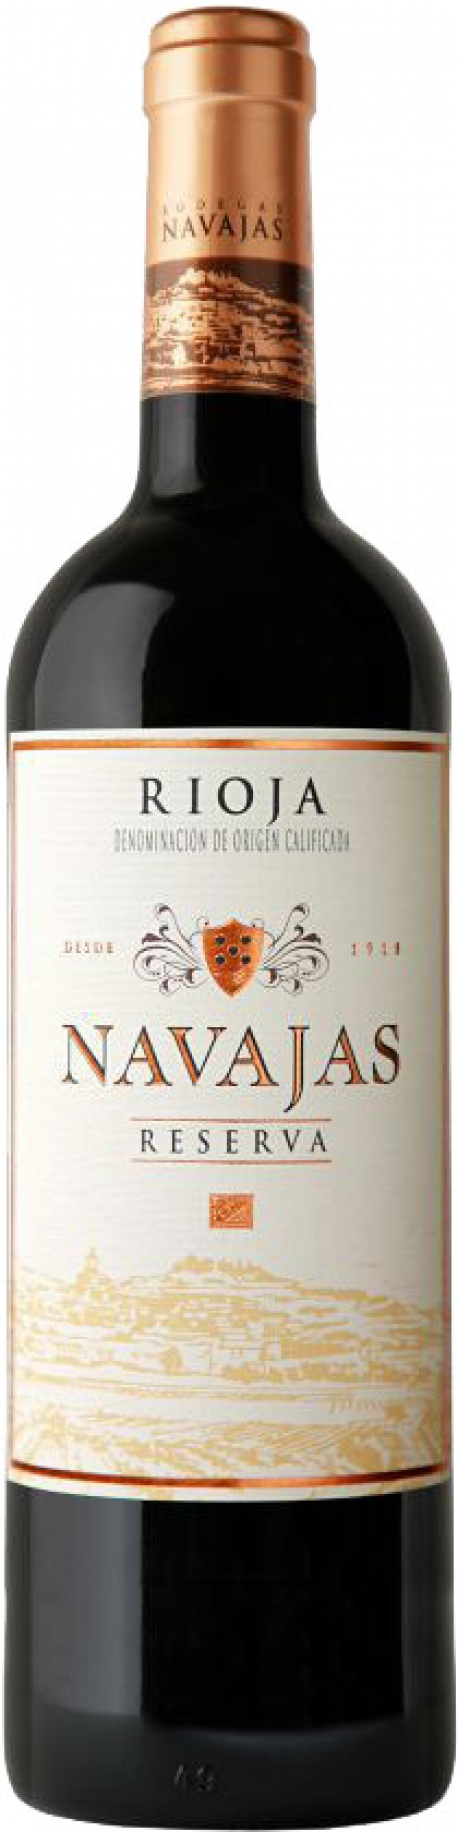 Navajas - Reserva Tinto 2011 (75cl Bottle)